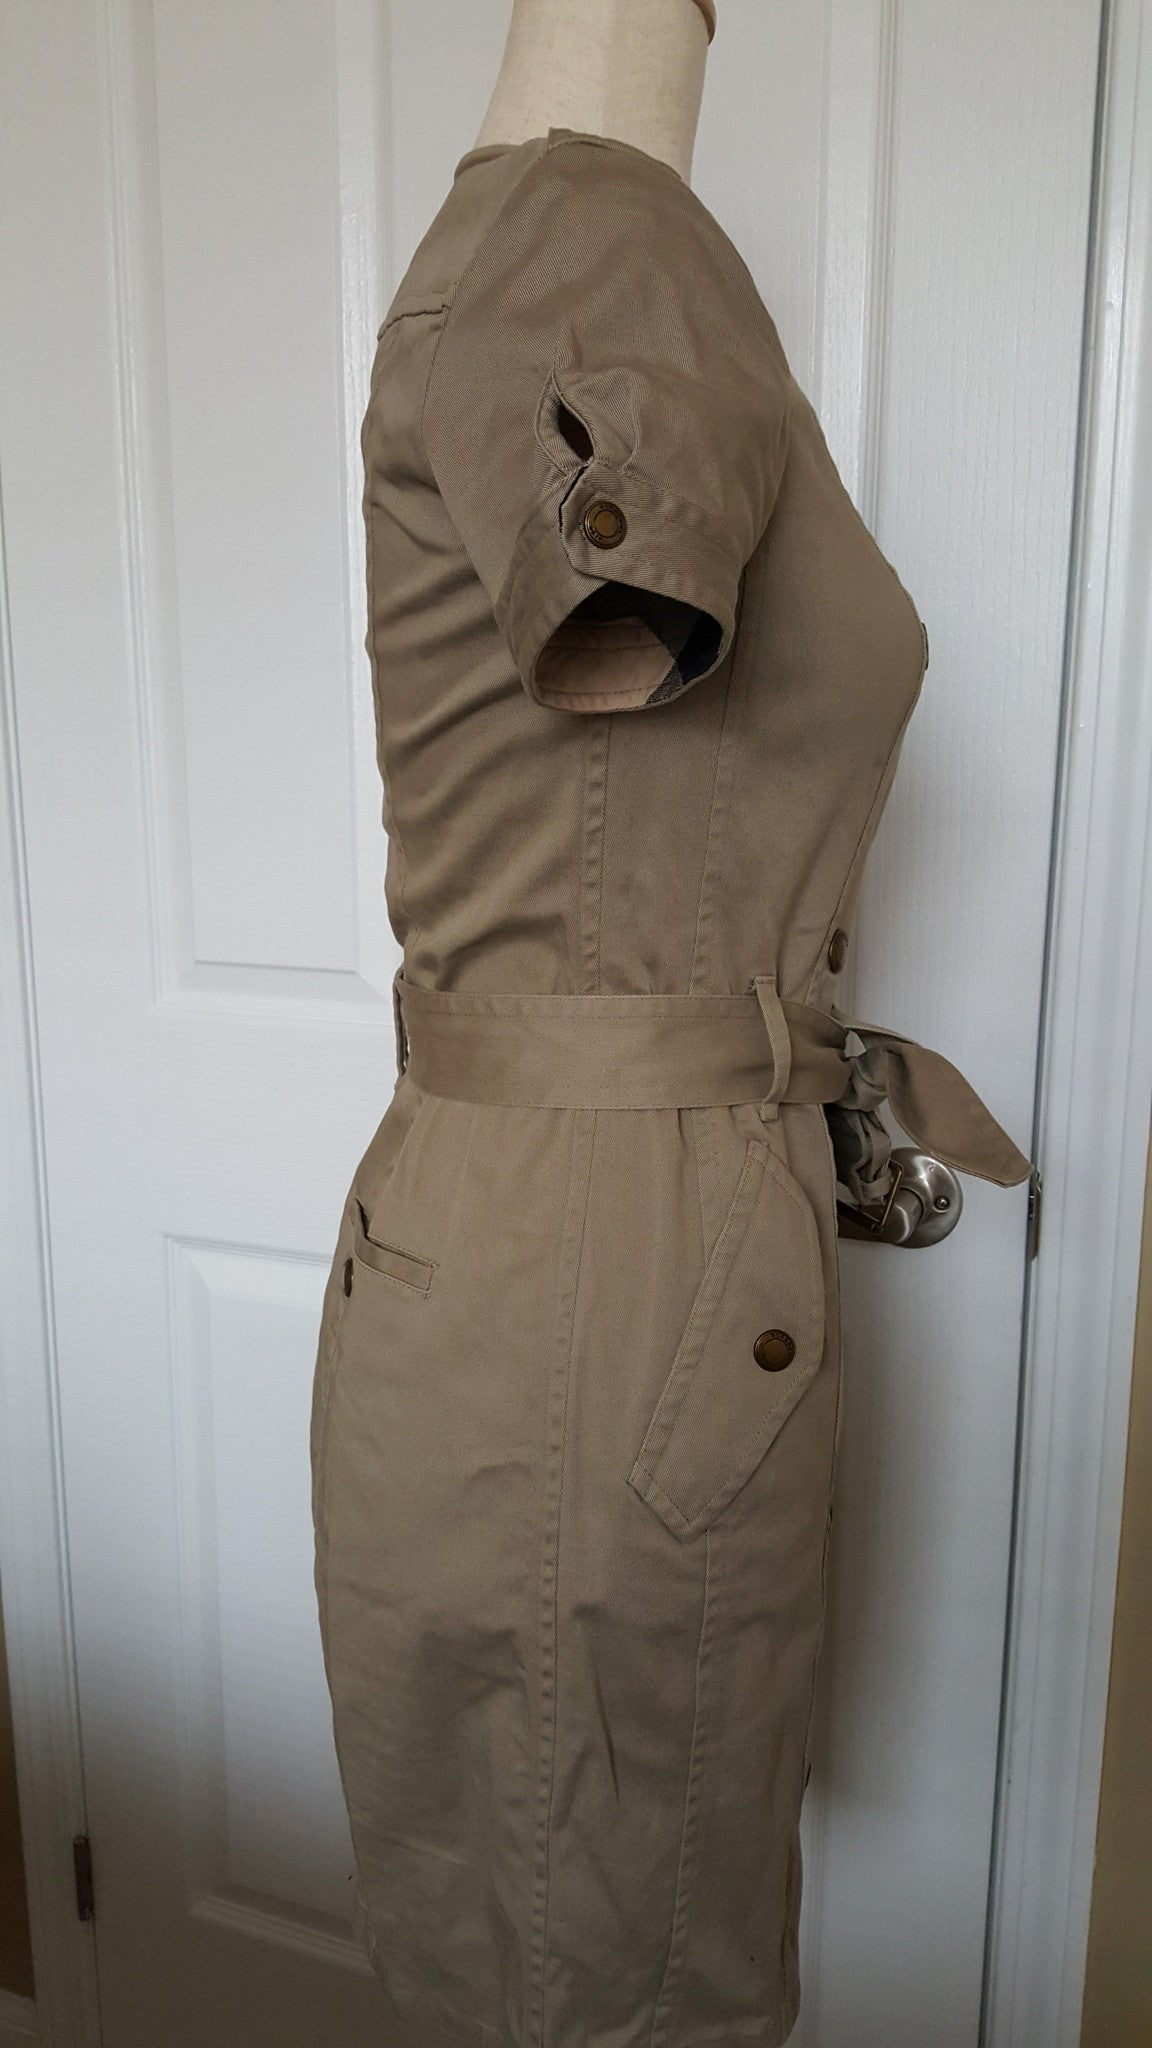 BURBERRY BRIT BEIGE COTTON TRENCH DRESS - SIZE US 4